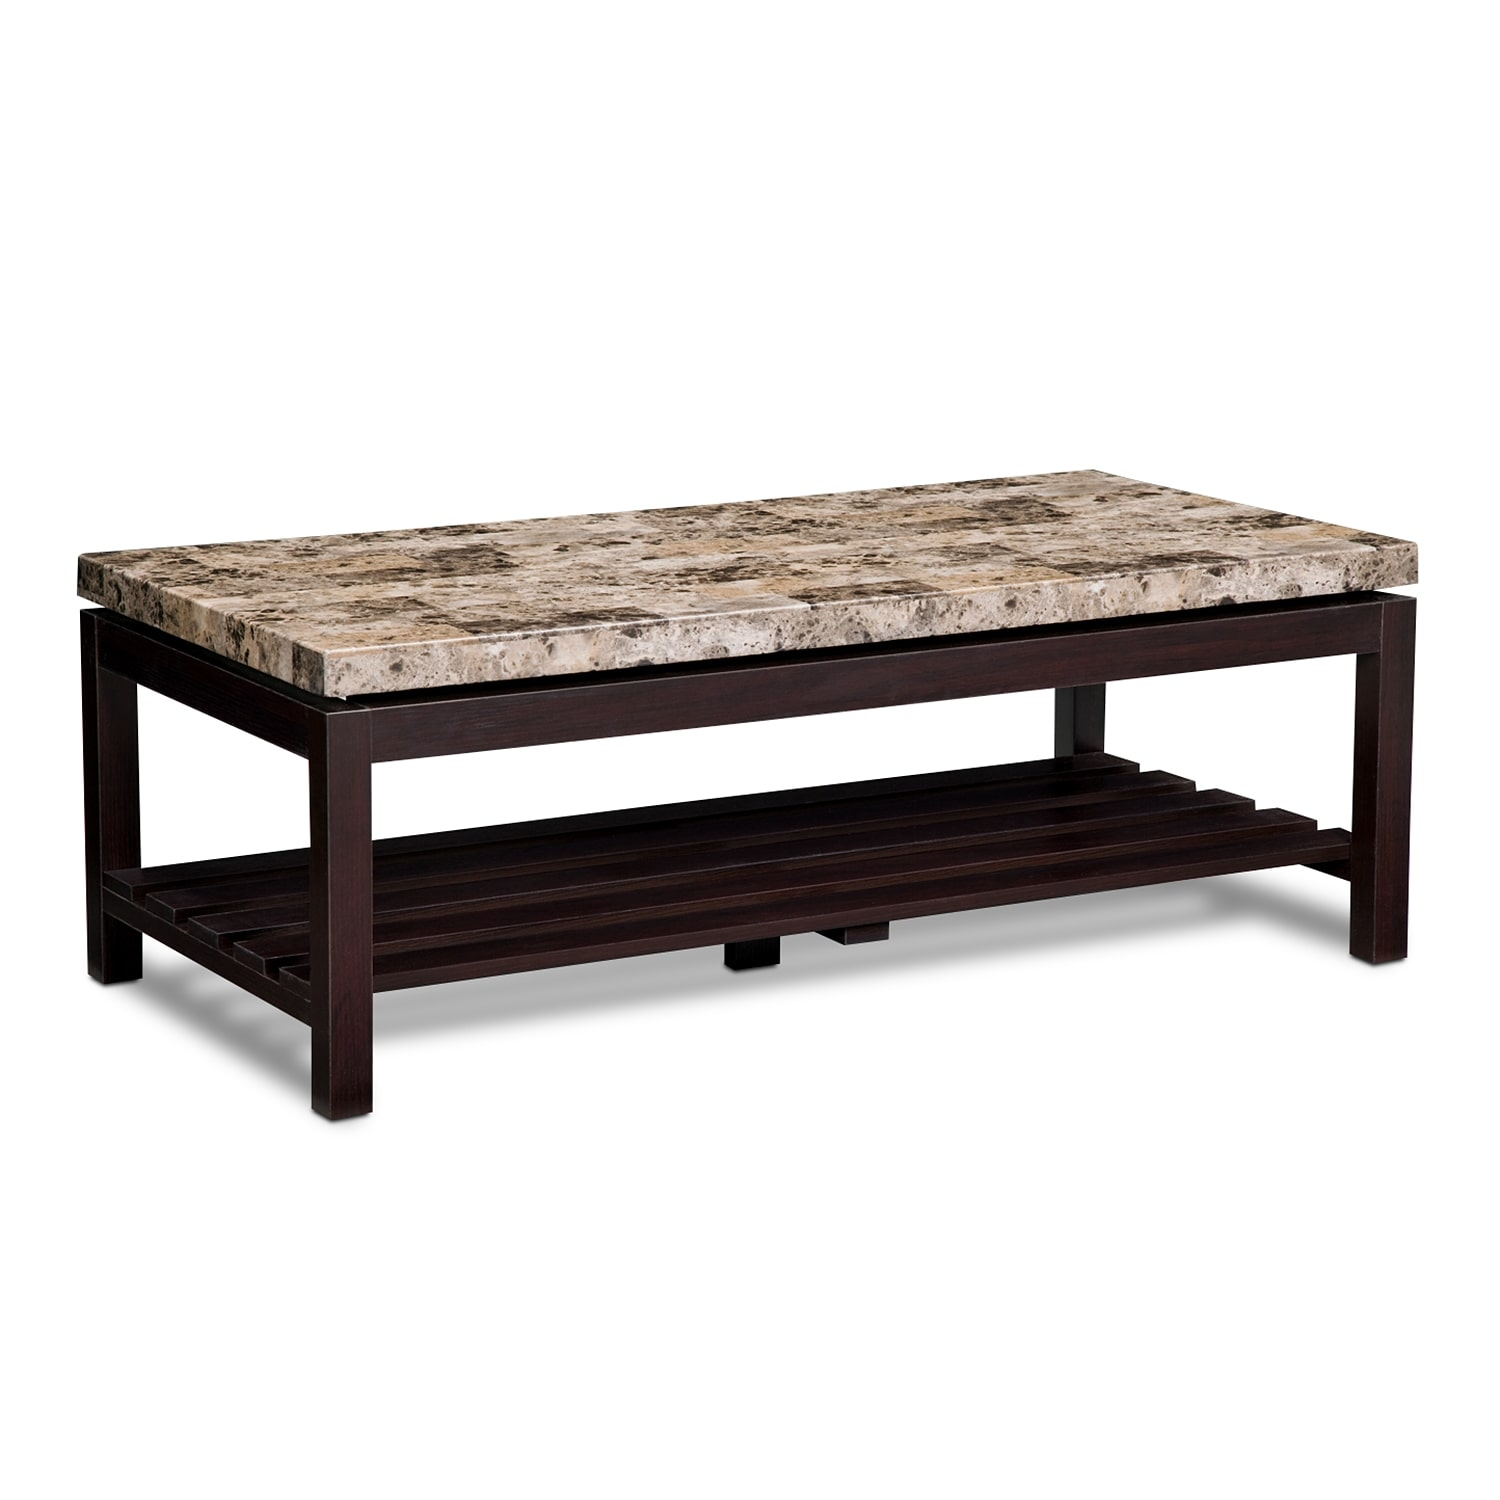 Accent and Occasional Furniture - Audra Cocktail Table - Merlot